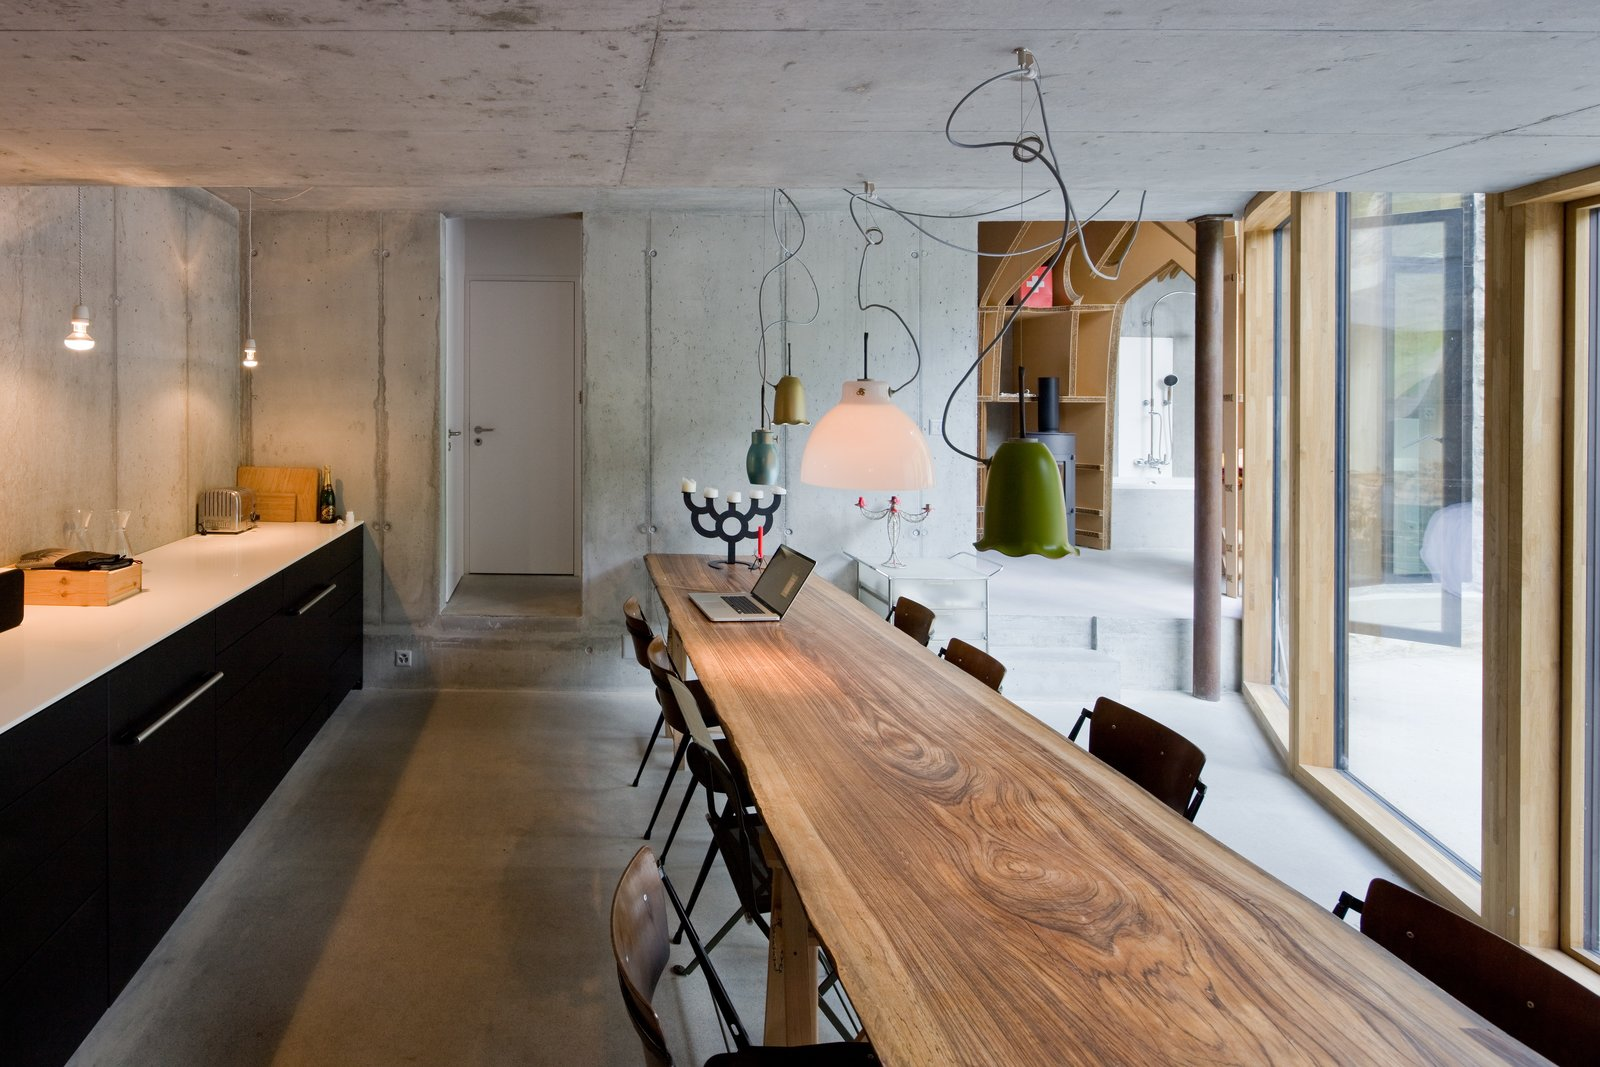 Dining Room, Chair, Pendant Lighting, Table, Concrete Floor, and Storage  Photos from Stay in a Swiss Vacation Home That's Literally Inside a Mountain